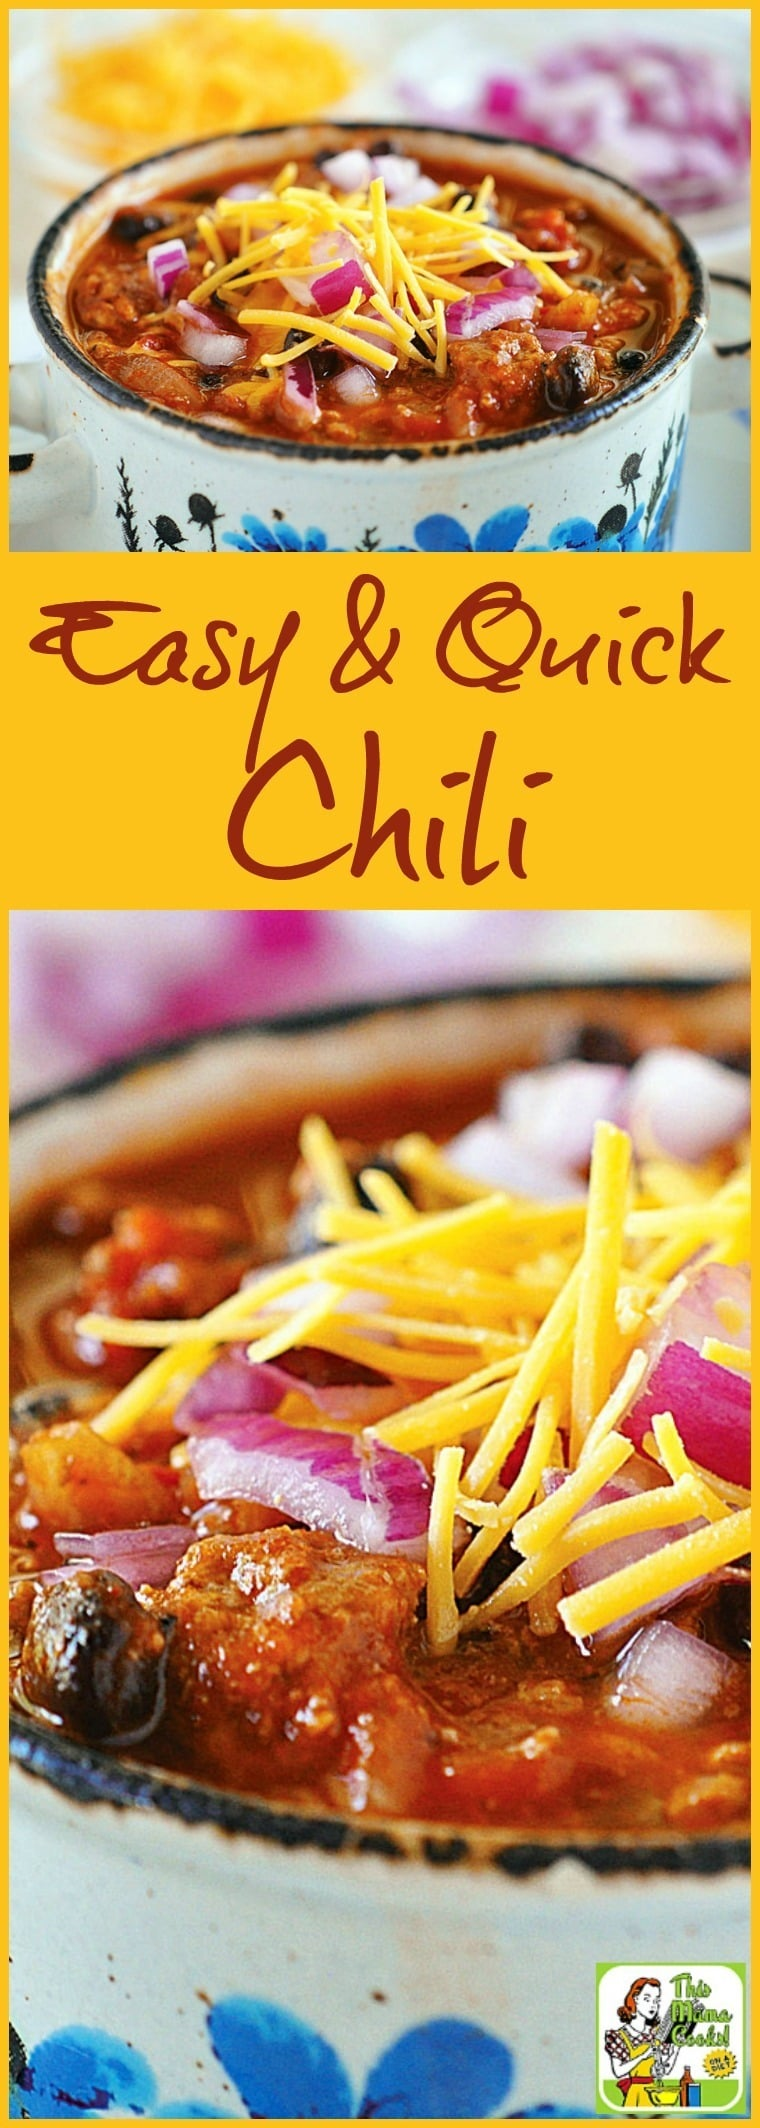 Easy & Quick Chili Recipe